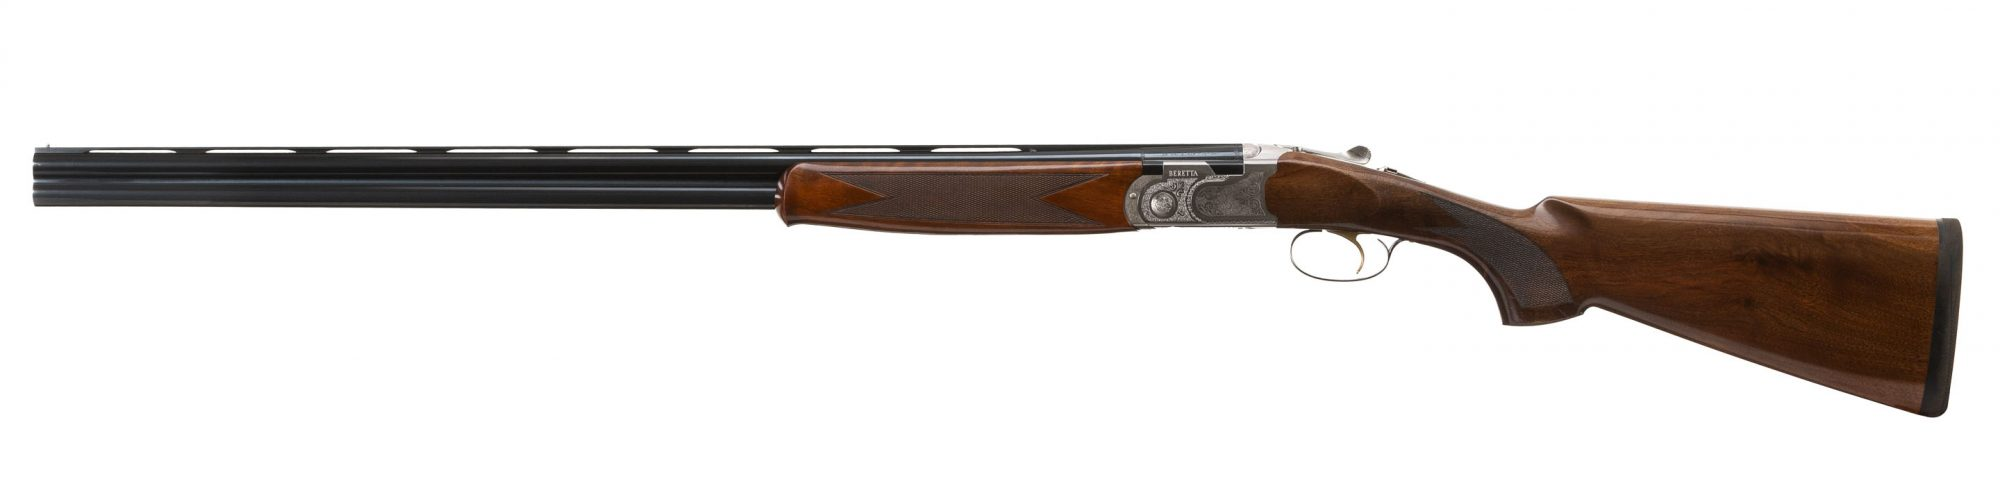 Photo of a pre-owned Beretta 686 Silver Pigeon I 28 gauge shotgun, for sale by Turnbull Restoration of Bloomfield, NY